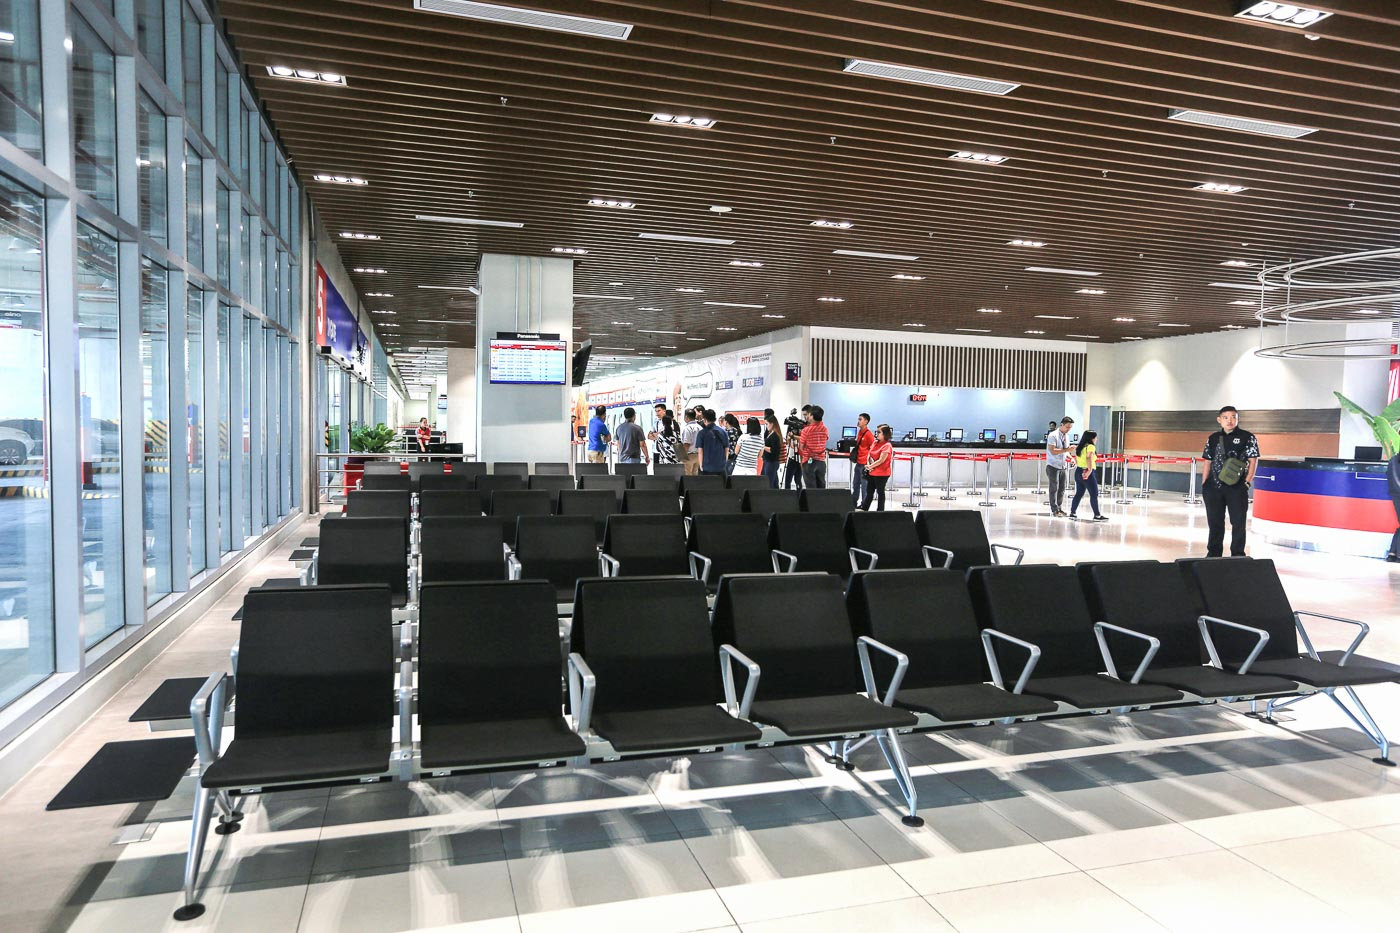 WAITING AREA. Comfortable seats for passengers waiting for their ride. Photo by Ben Nabong/Rappler